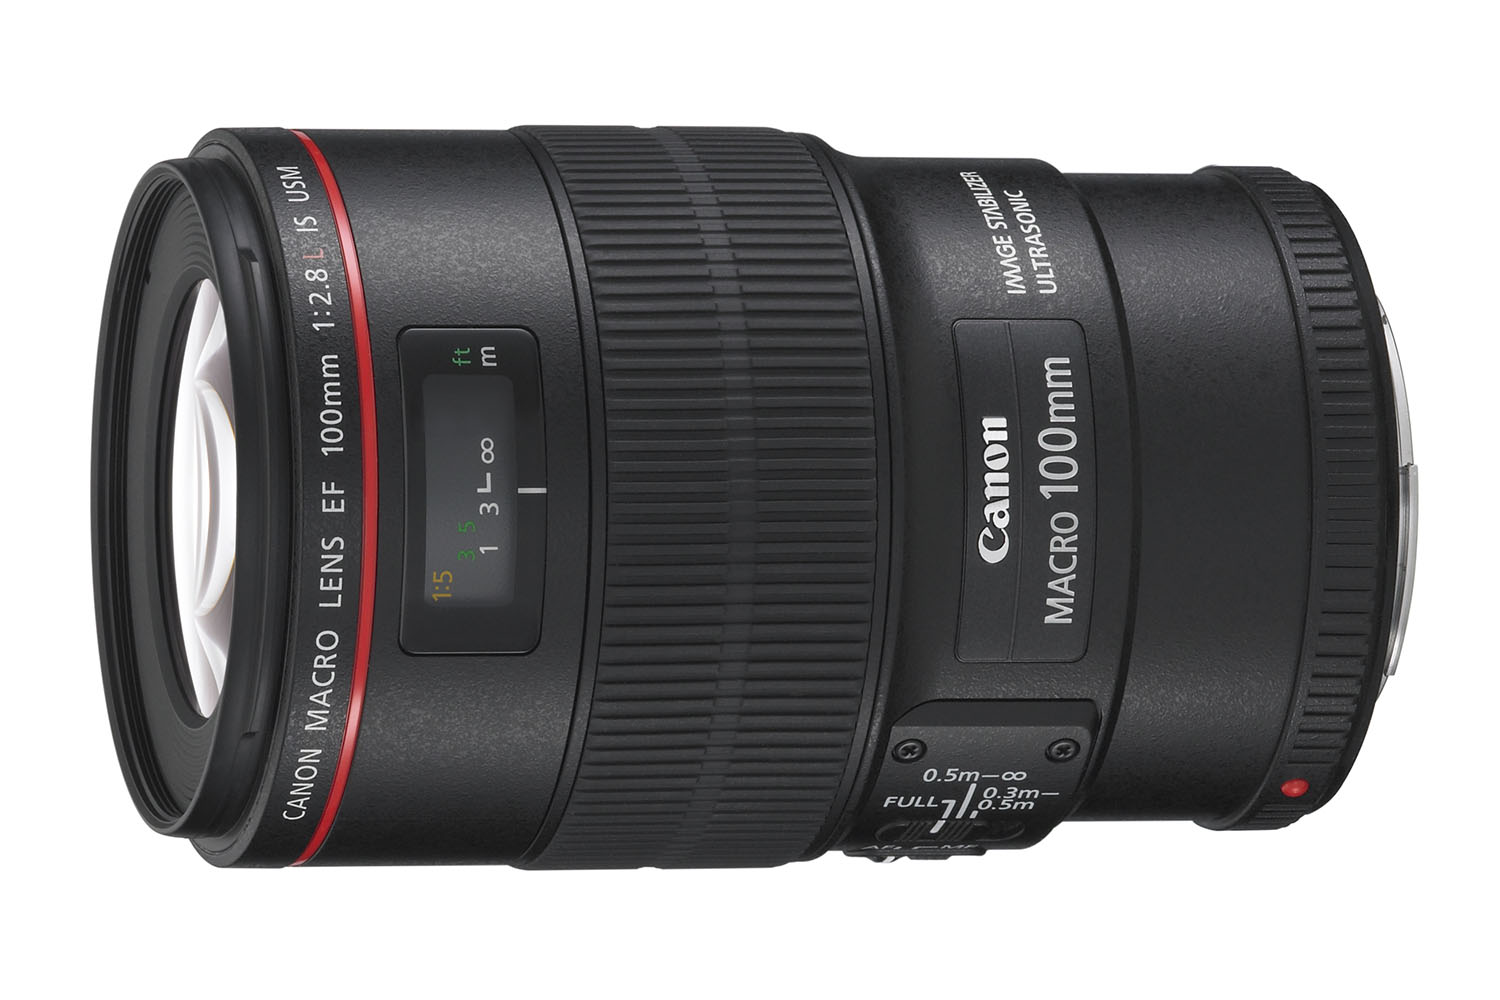 The L-series Canon EF 100mm f/2.8L Macro IS USM